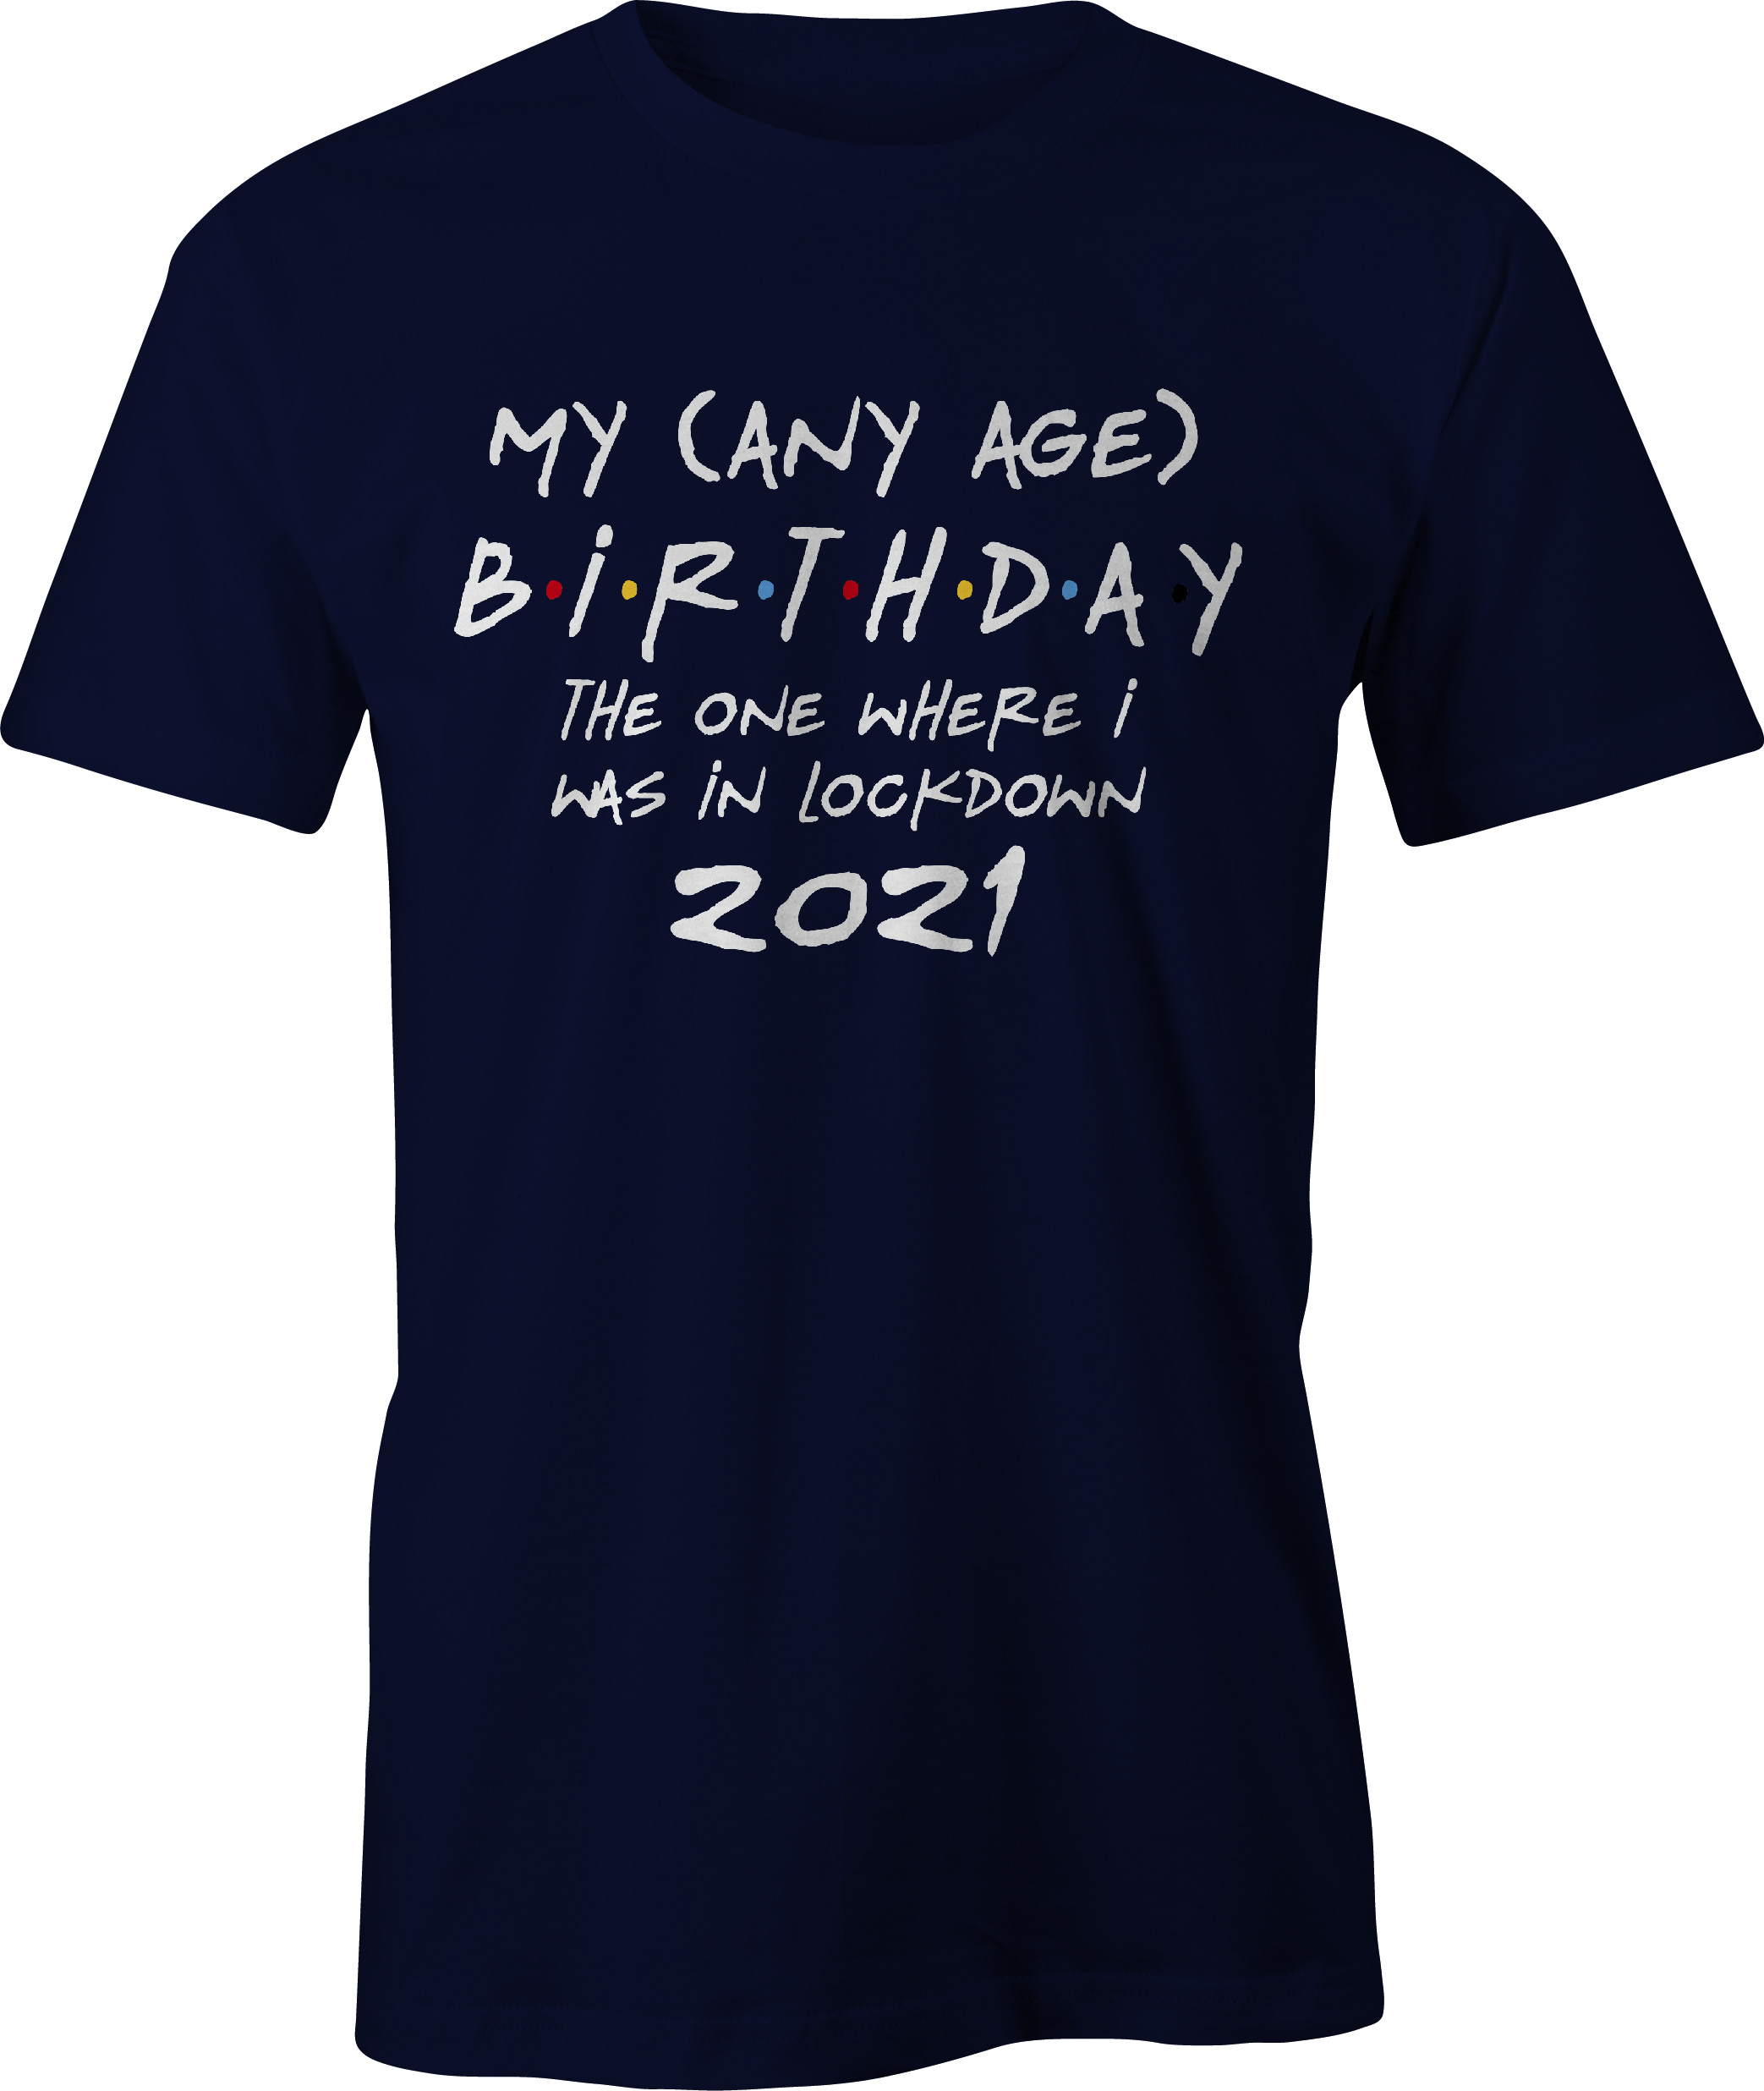 Friends style any age birthday in lockdown t shirt in navy